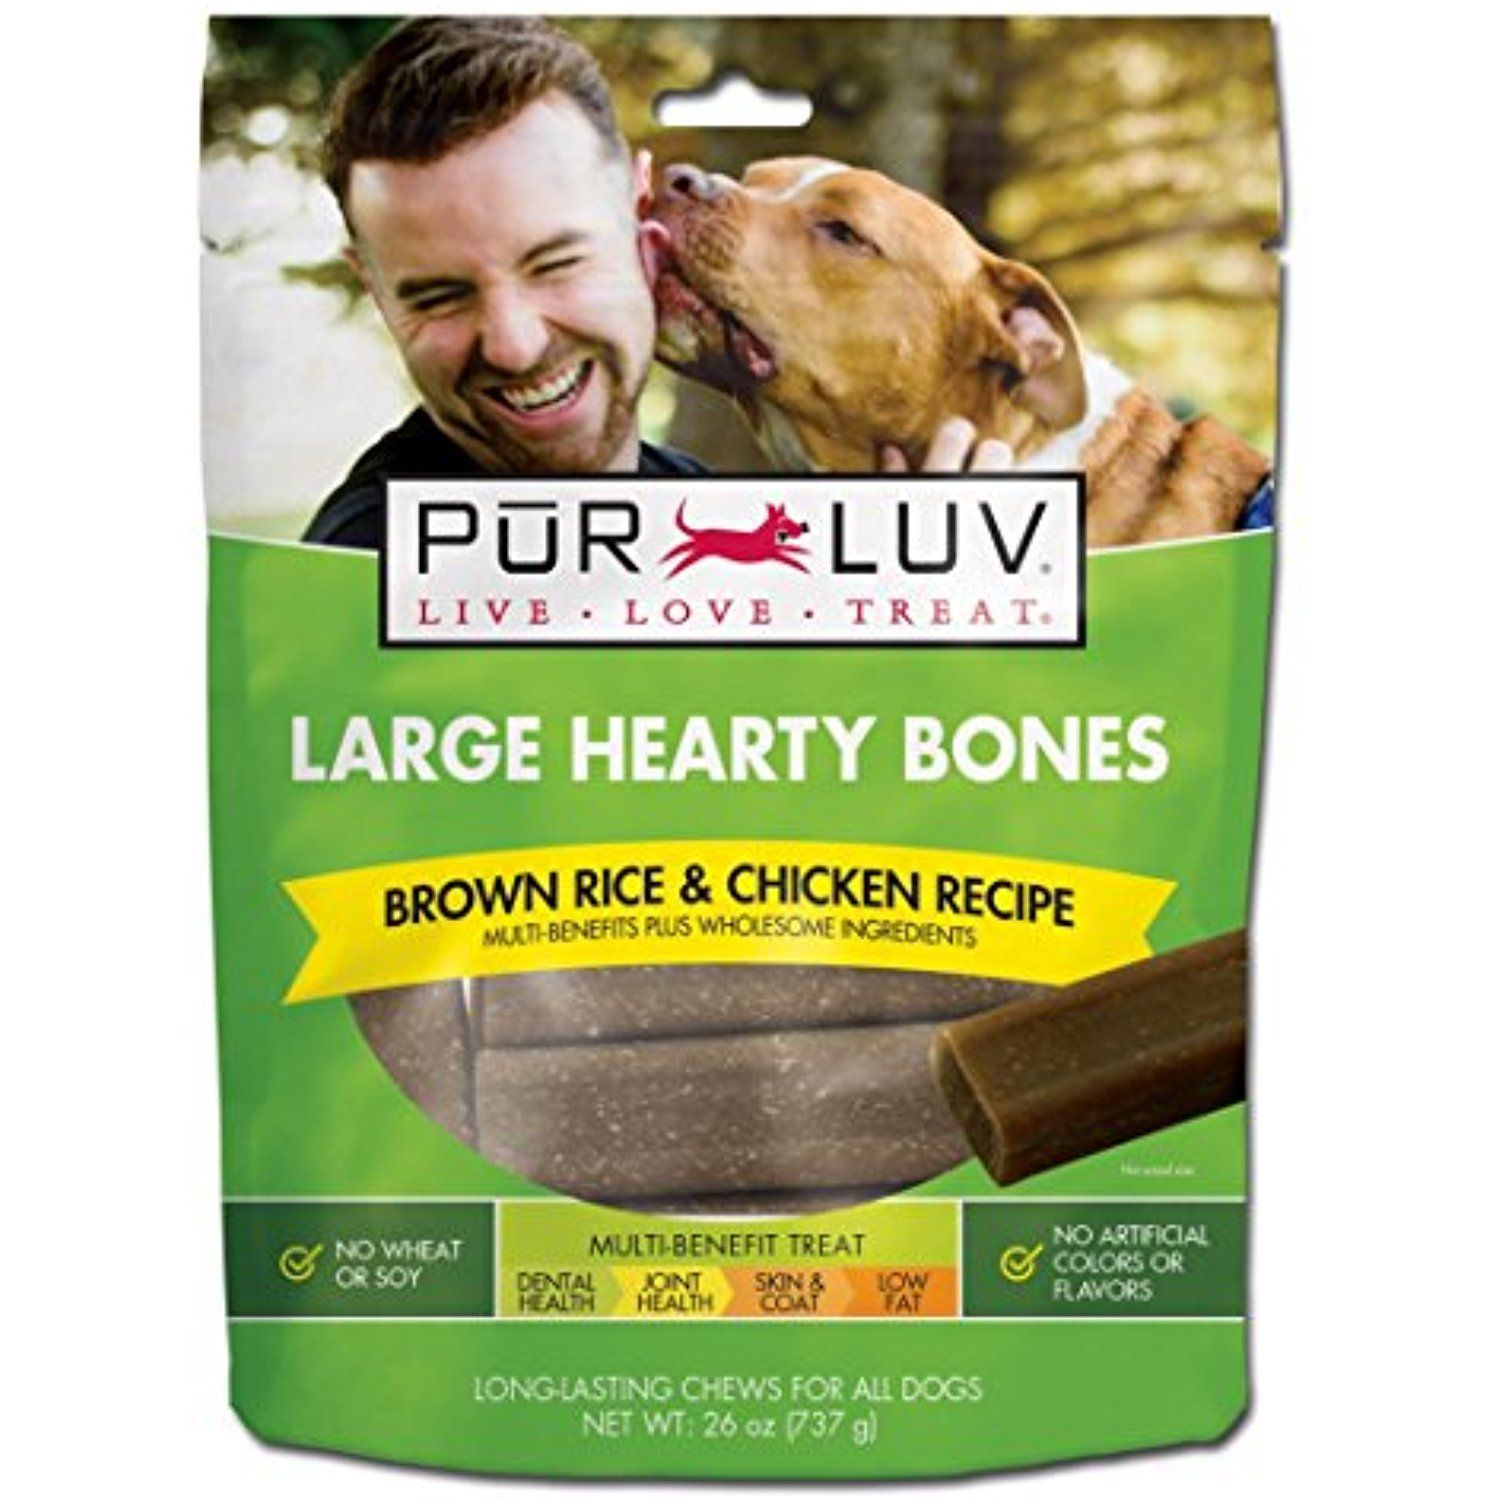 Pur Luv Large Hearty Bones Brown Rice Chicken Recipe 26 Oz